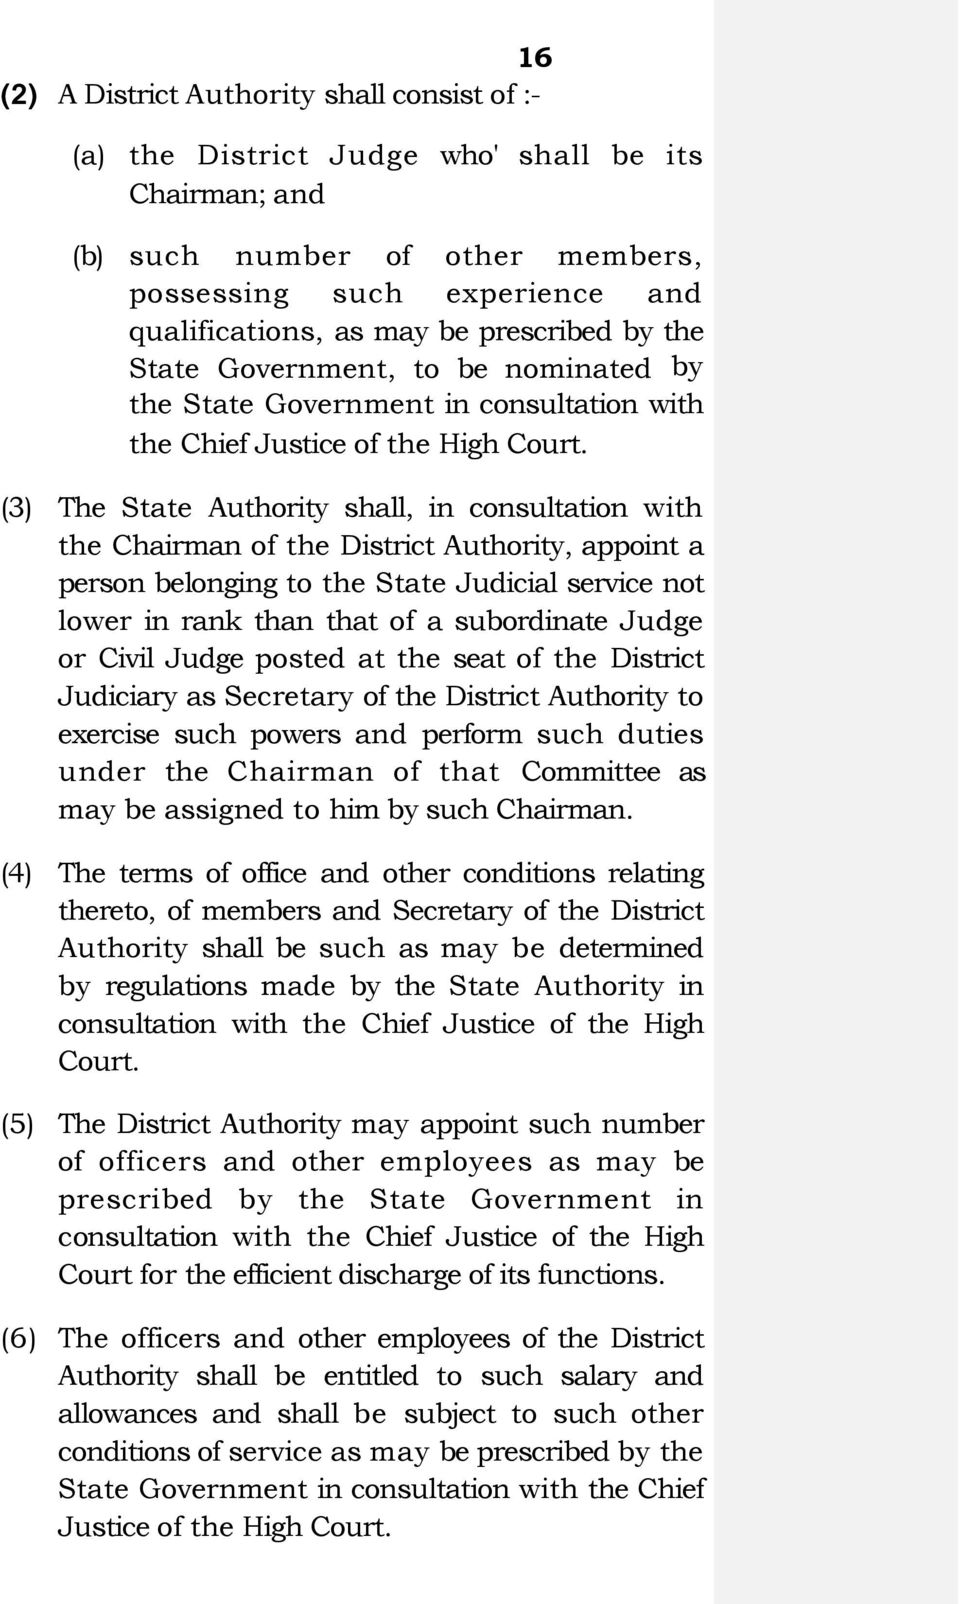 (3) The State Authority shall, in consultation with the Chairman of the District Authority, appoint a person belonging to the State Judicial service not lower in rank than that of a subordinate Judge